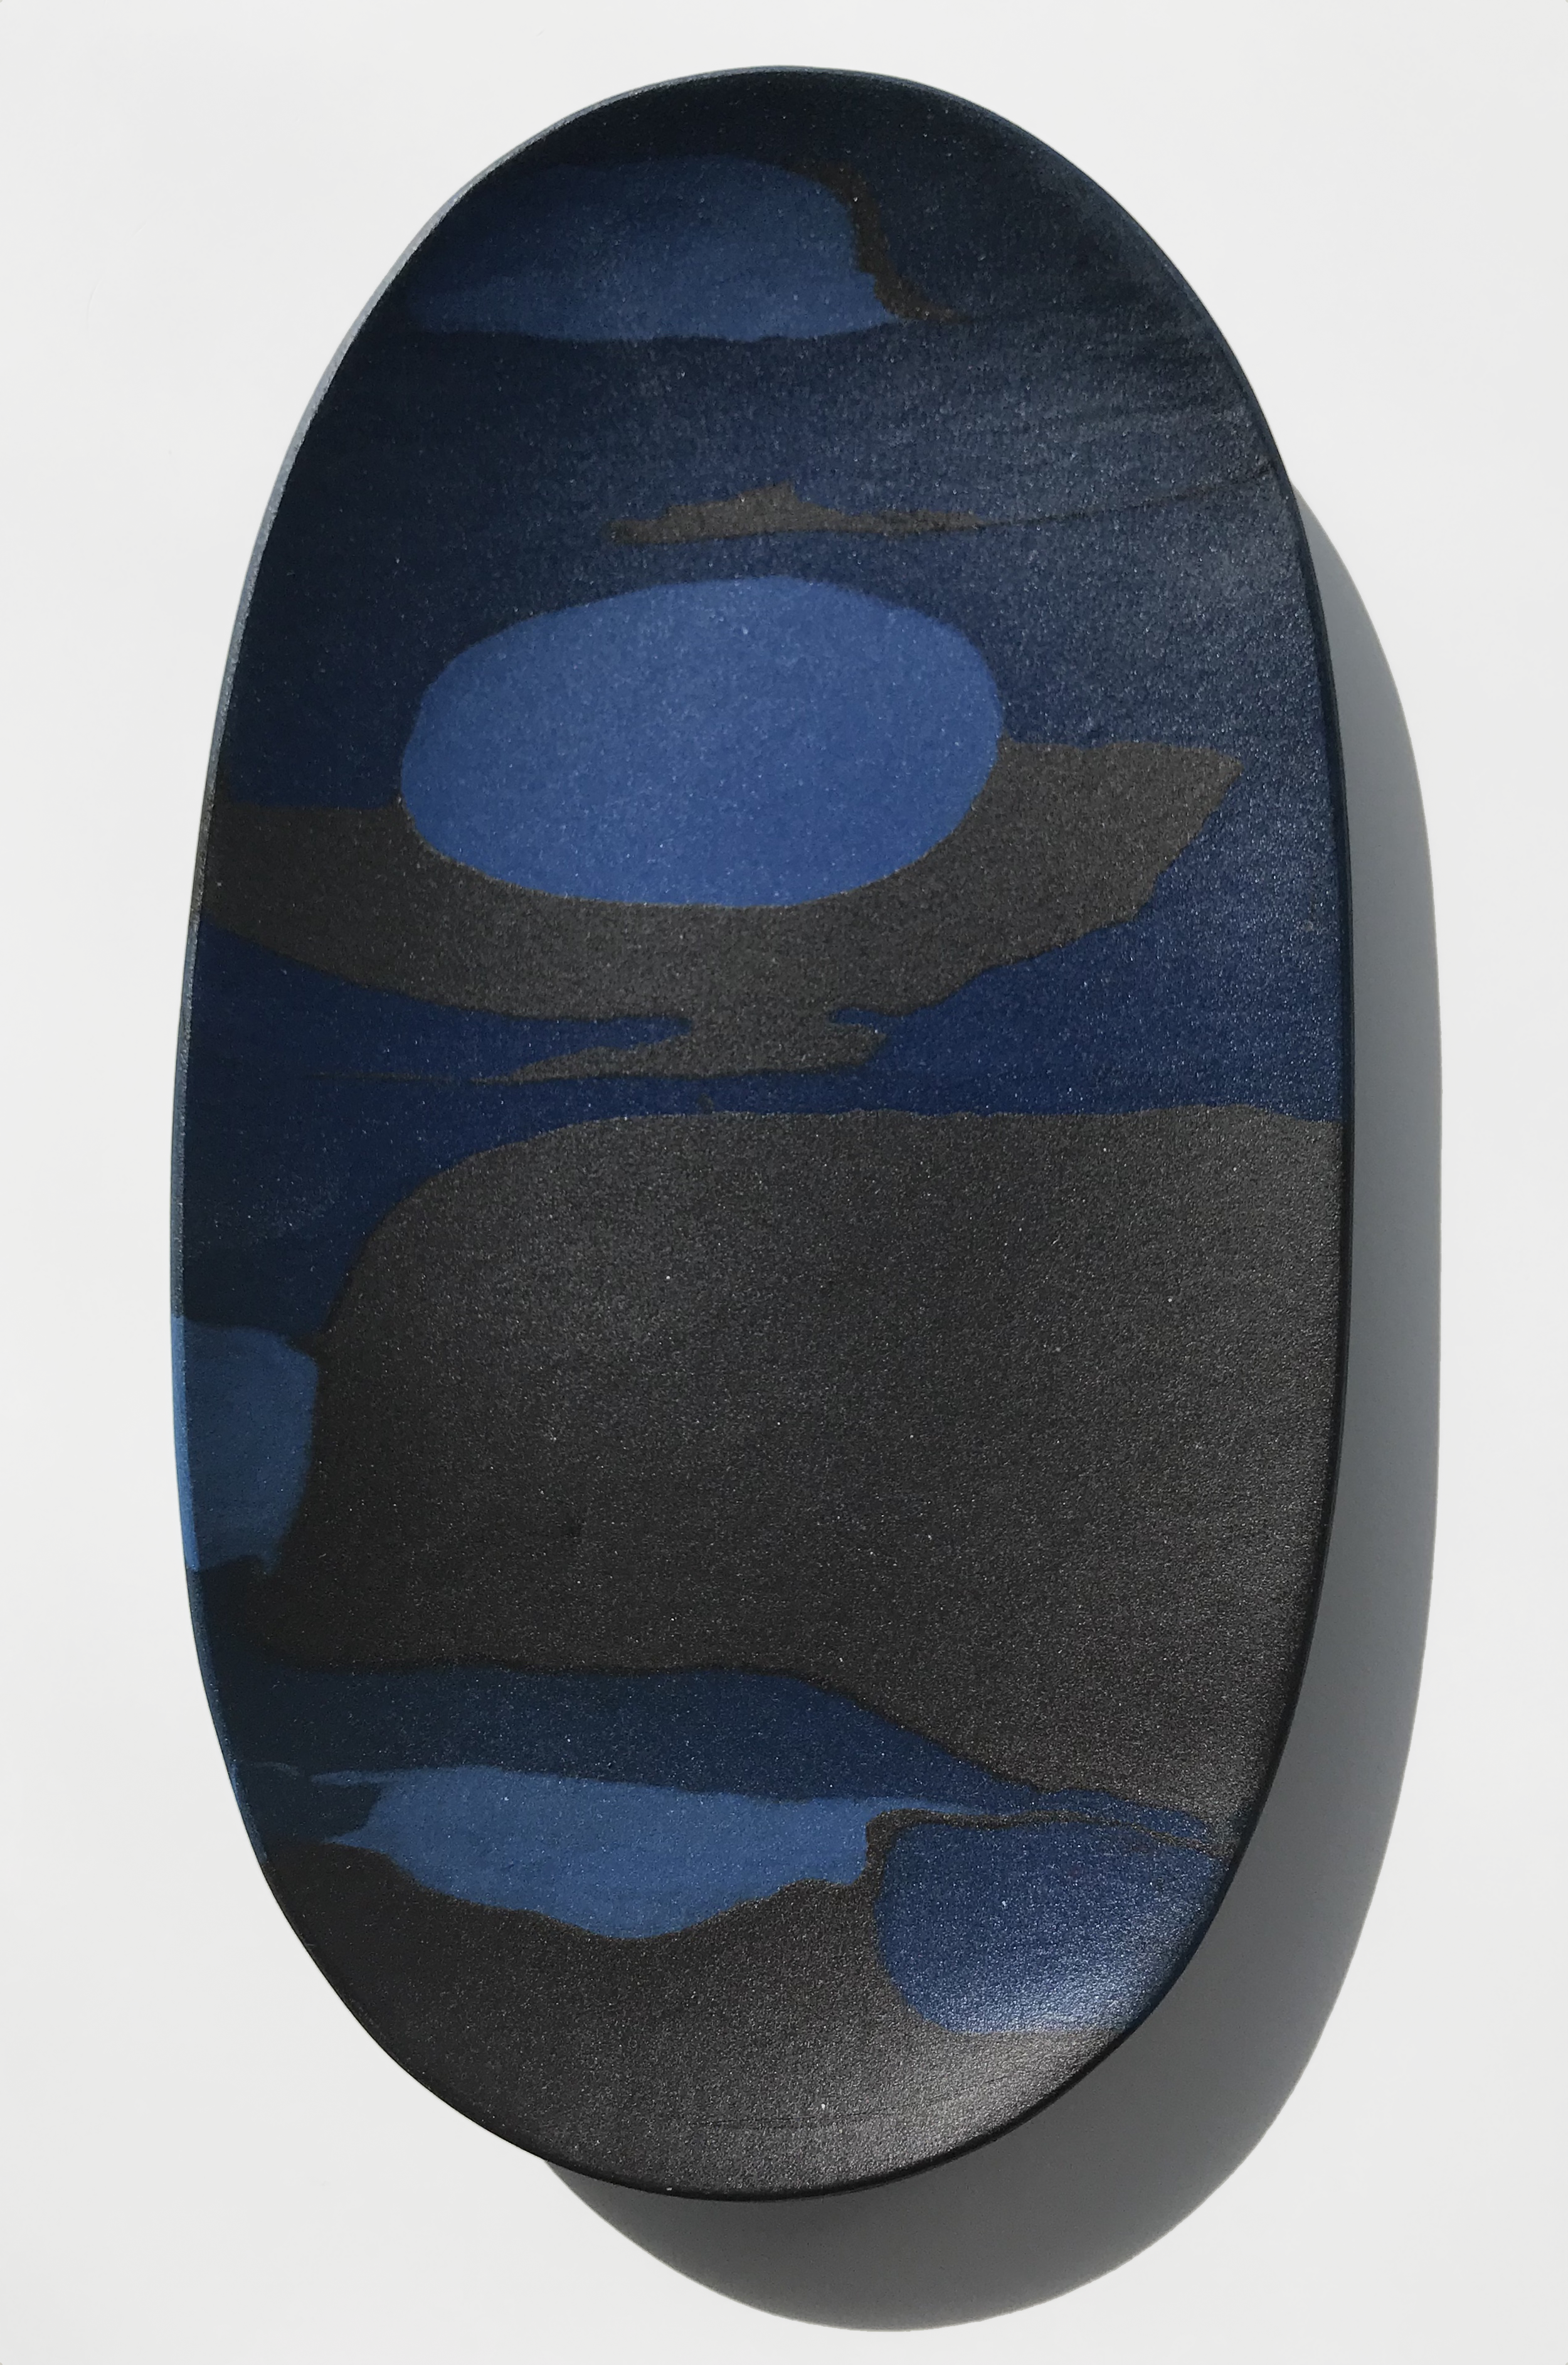 SMALL OVAL - Dimensions: 22 x 12.5 cm